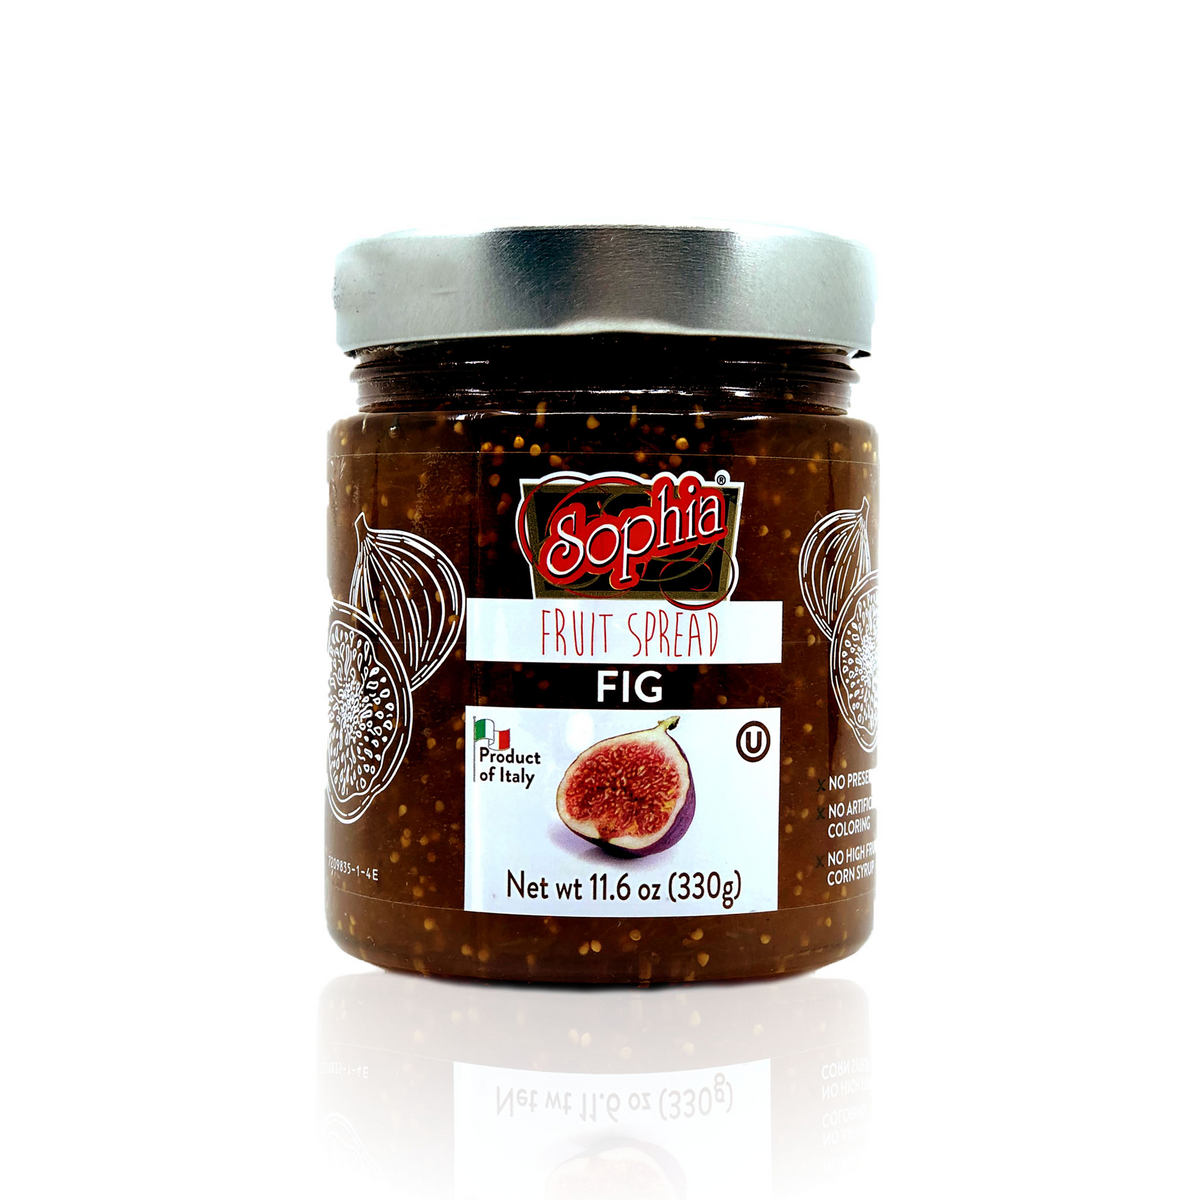 Sophia Fruit Spread - Fig Preserves